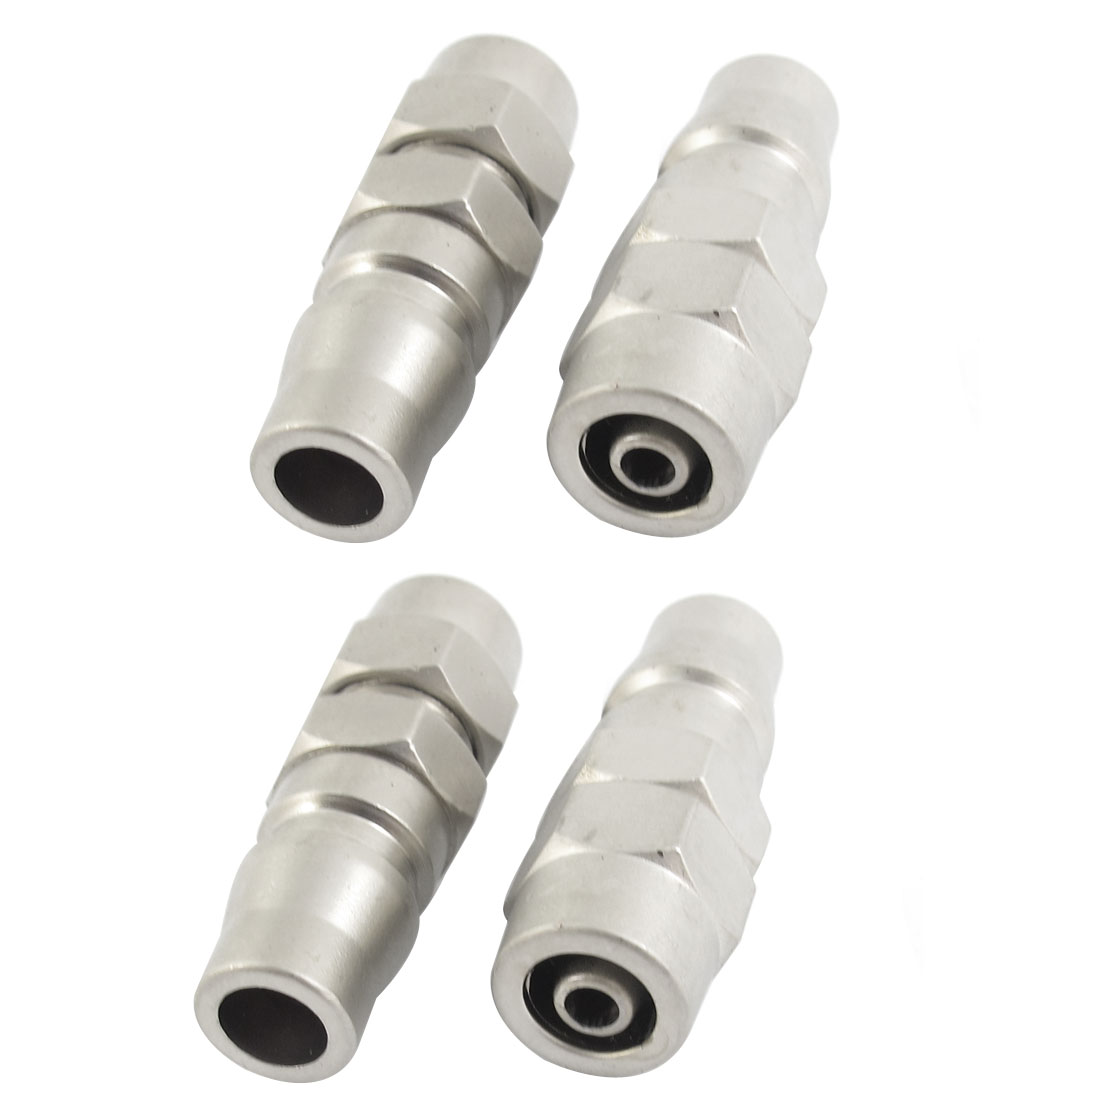 4Pcs 8mm x 5mm Hose PP20 Type Air Pneumatic Quick Coupler Coupling Fitting Pipe Connector Silver Tone